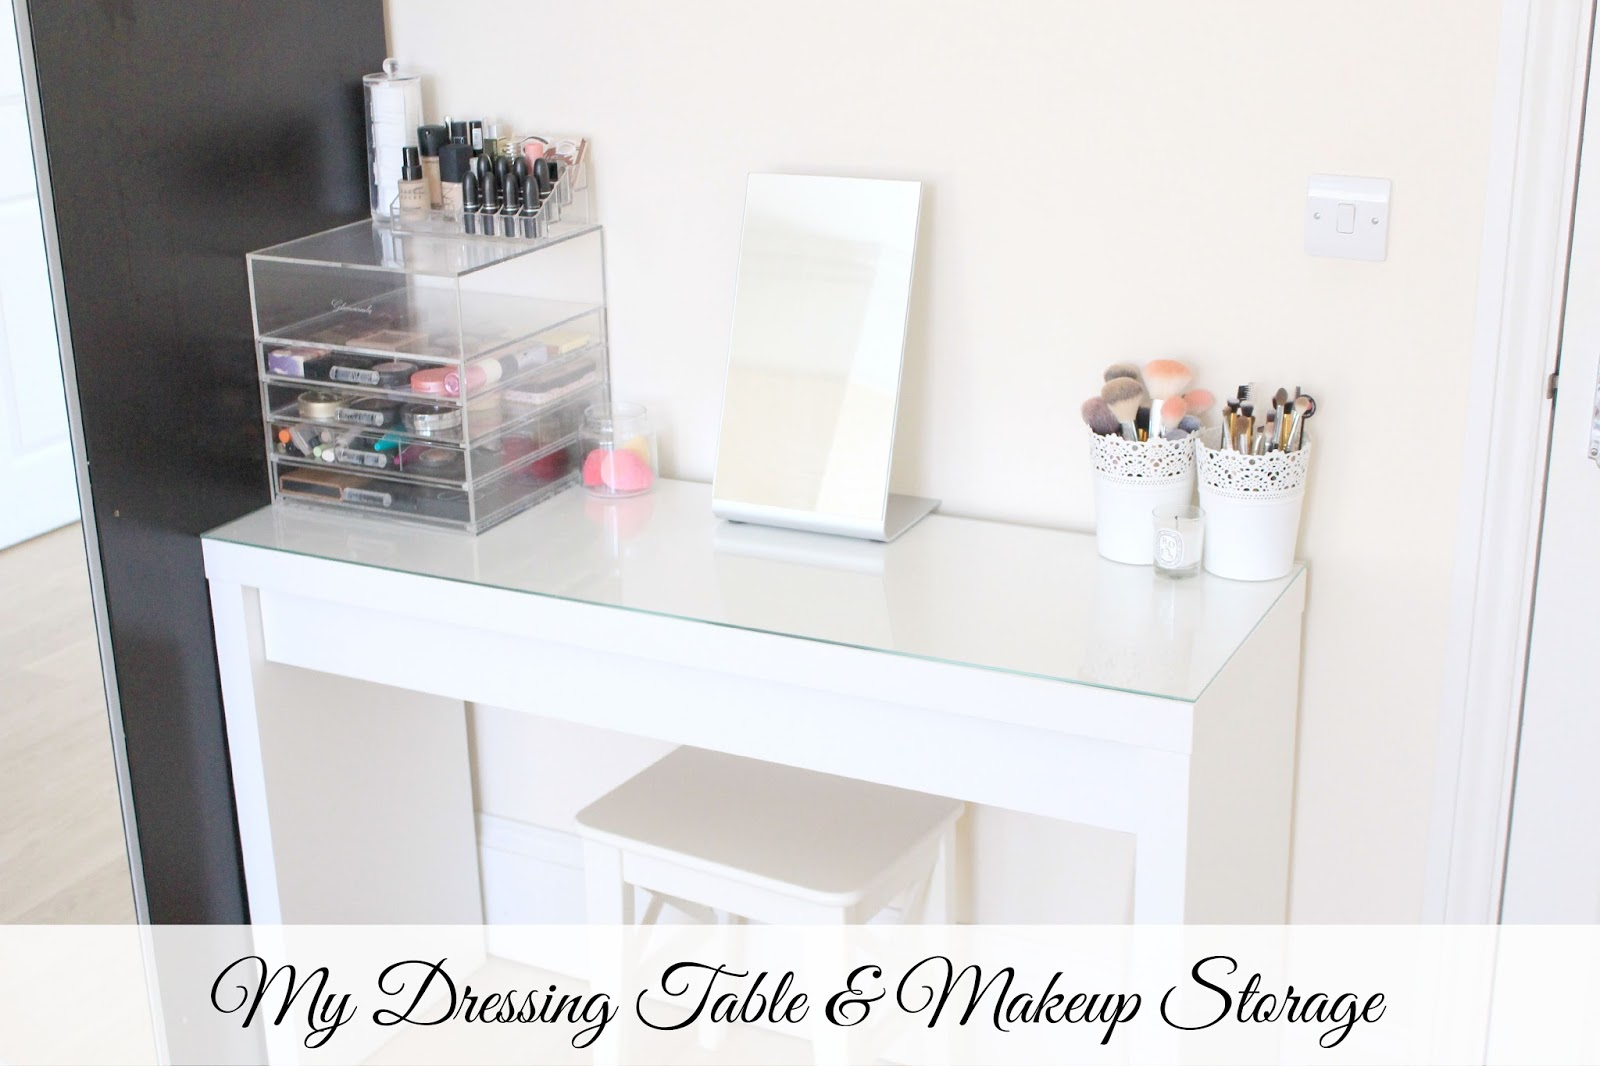 My Dressing Table And Makeup Storage Sunday 26 July 2017